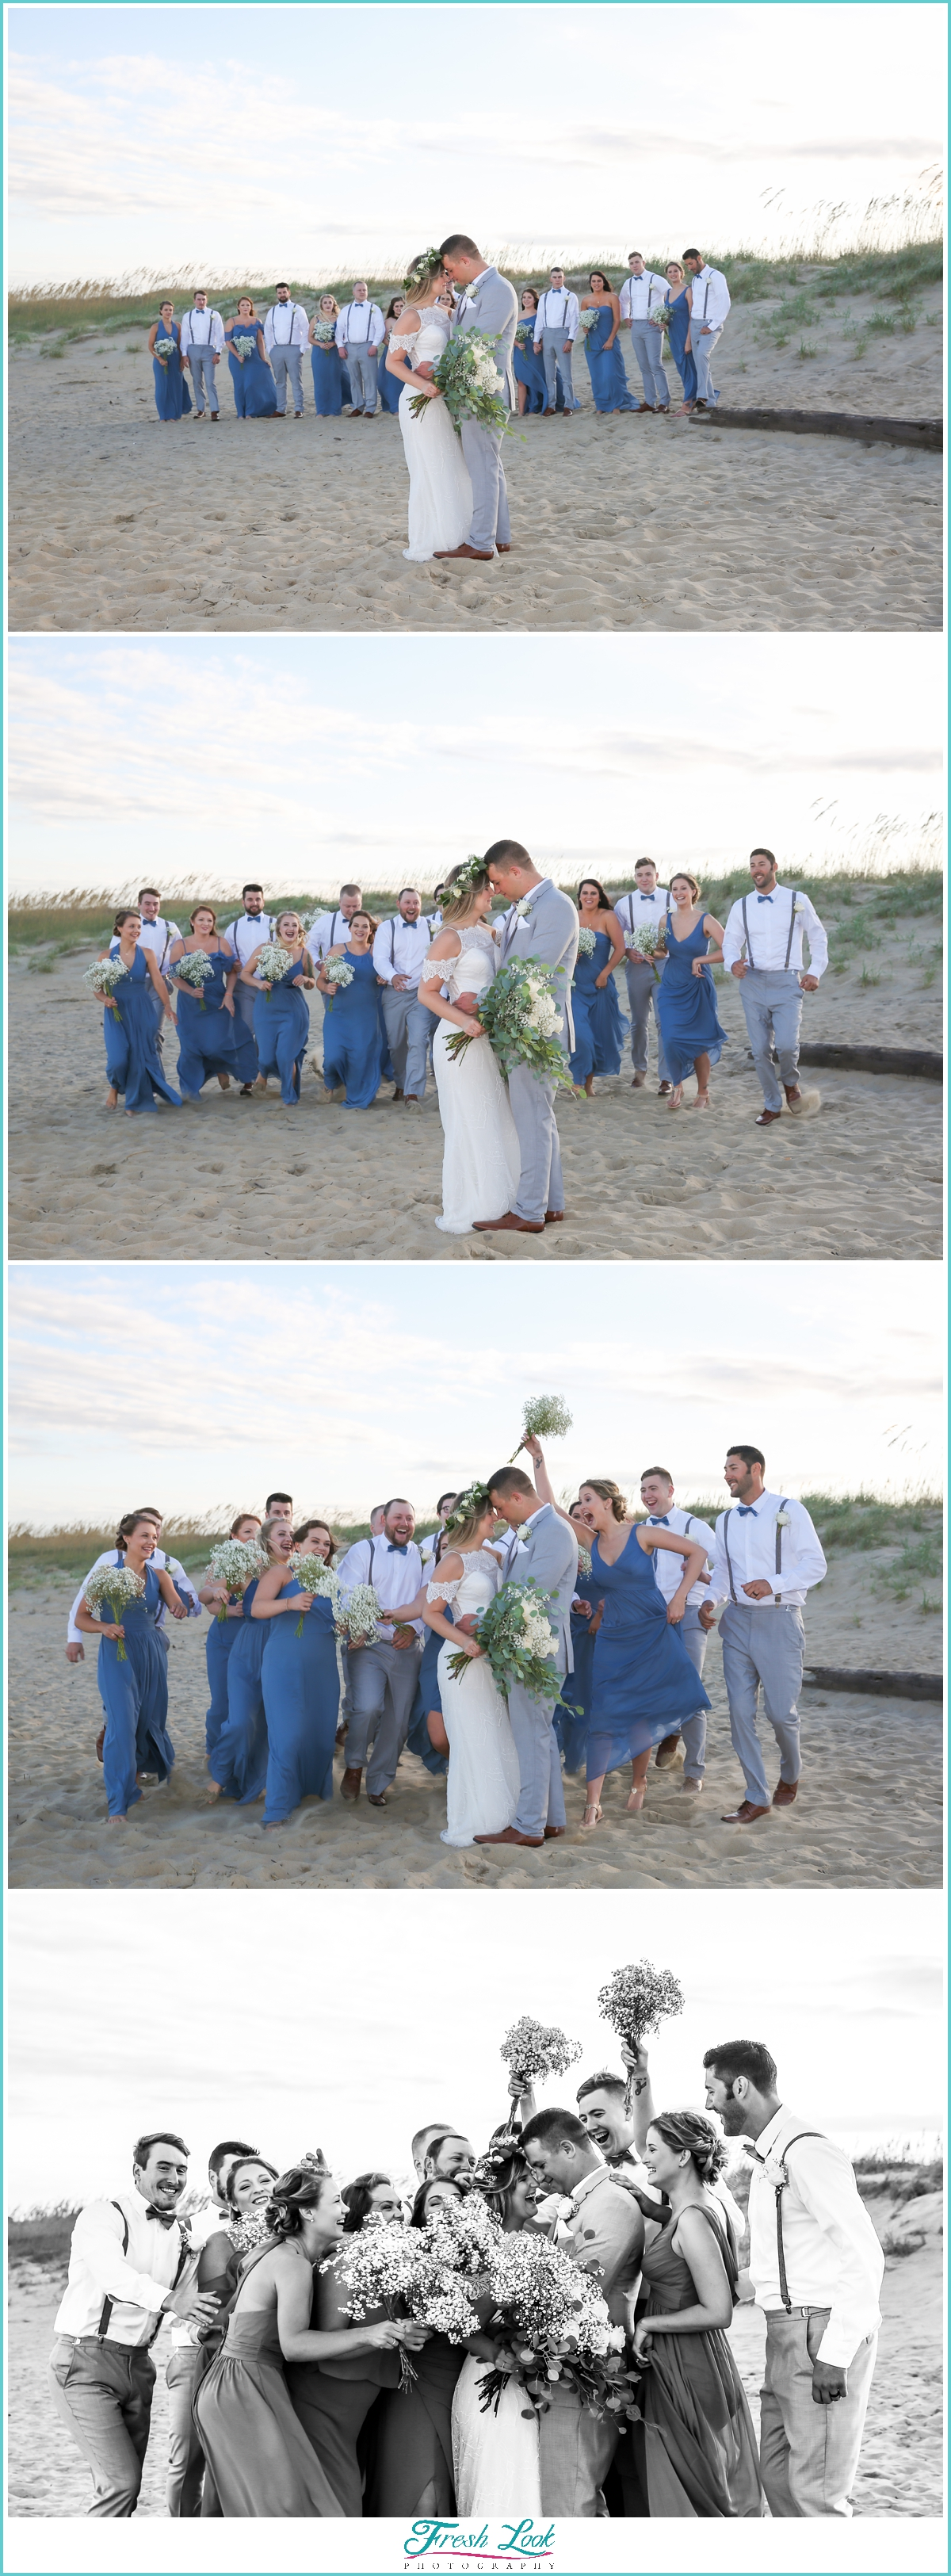 epic fun bridal party photos